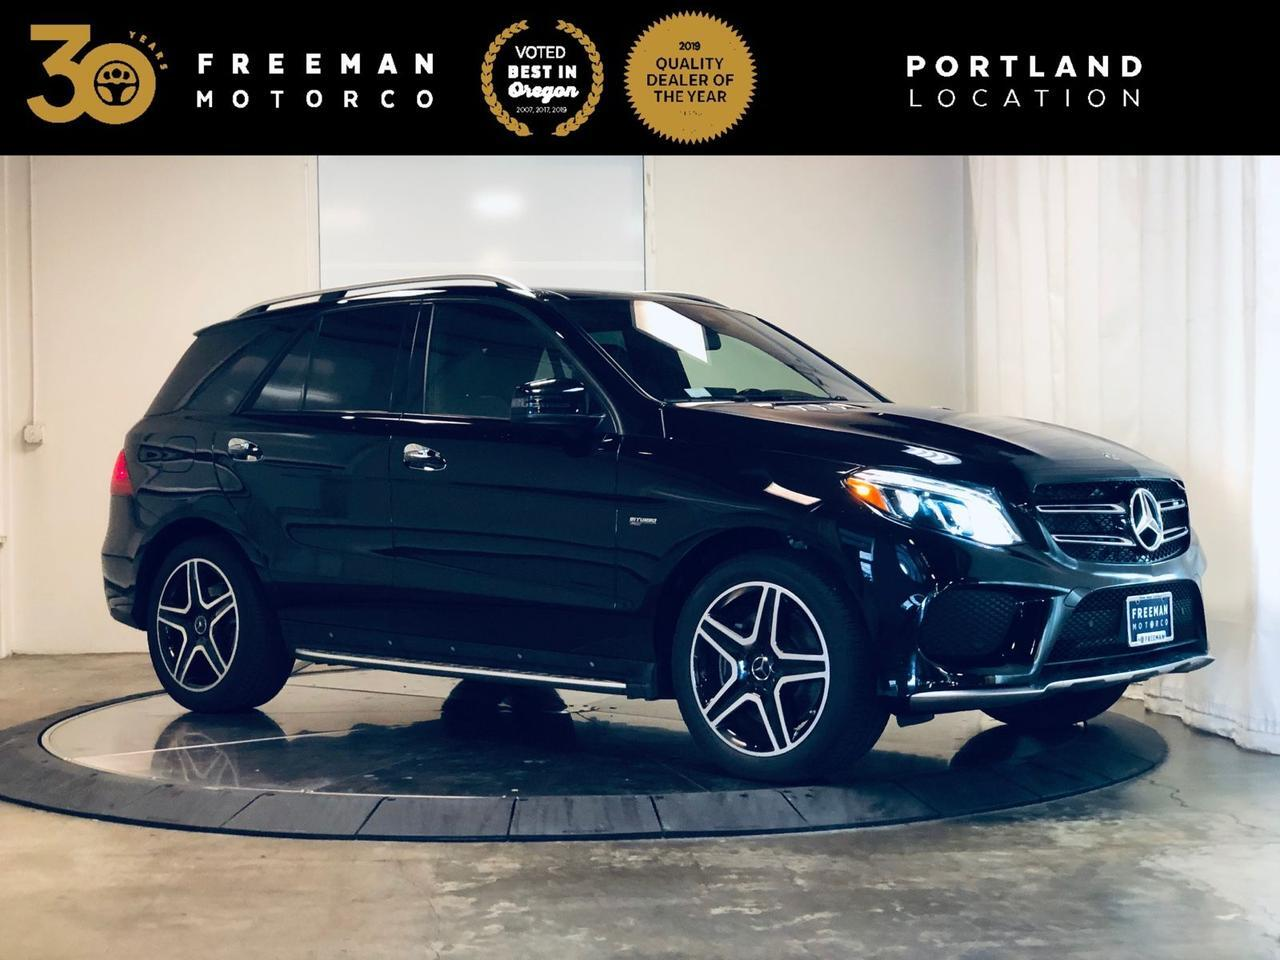 2017 Mercedes-Benz GLE 43 AMG Pano Roof Heated/Cooled Seats Portland OR